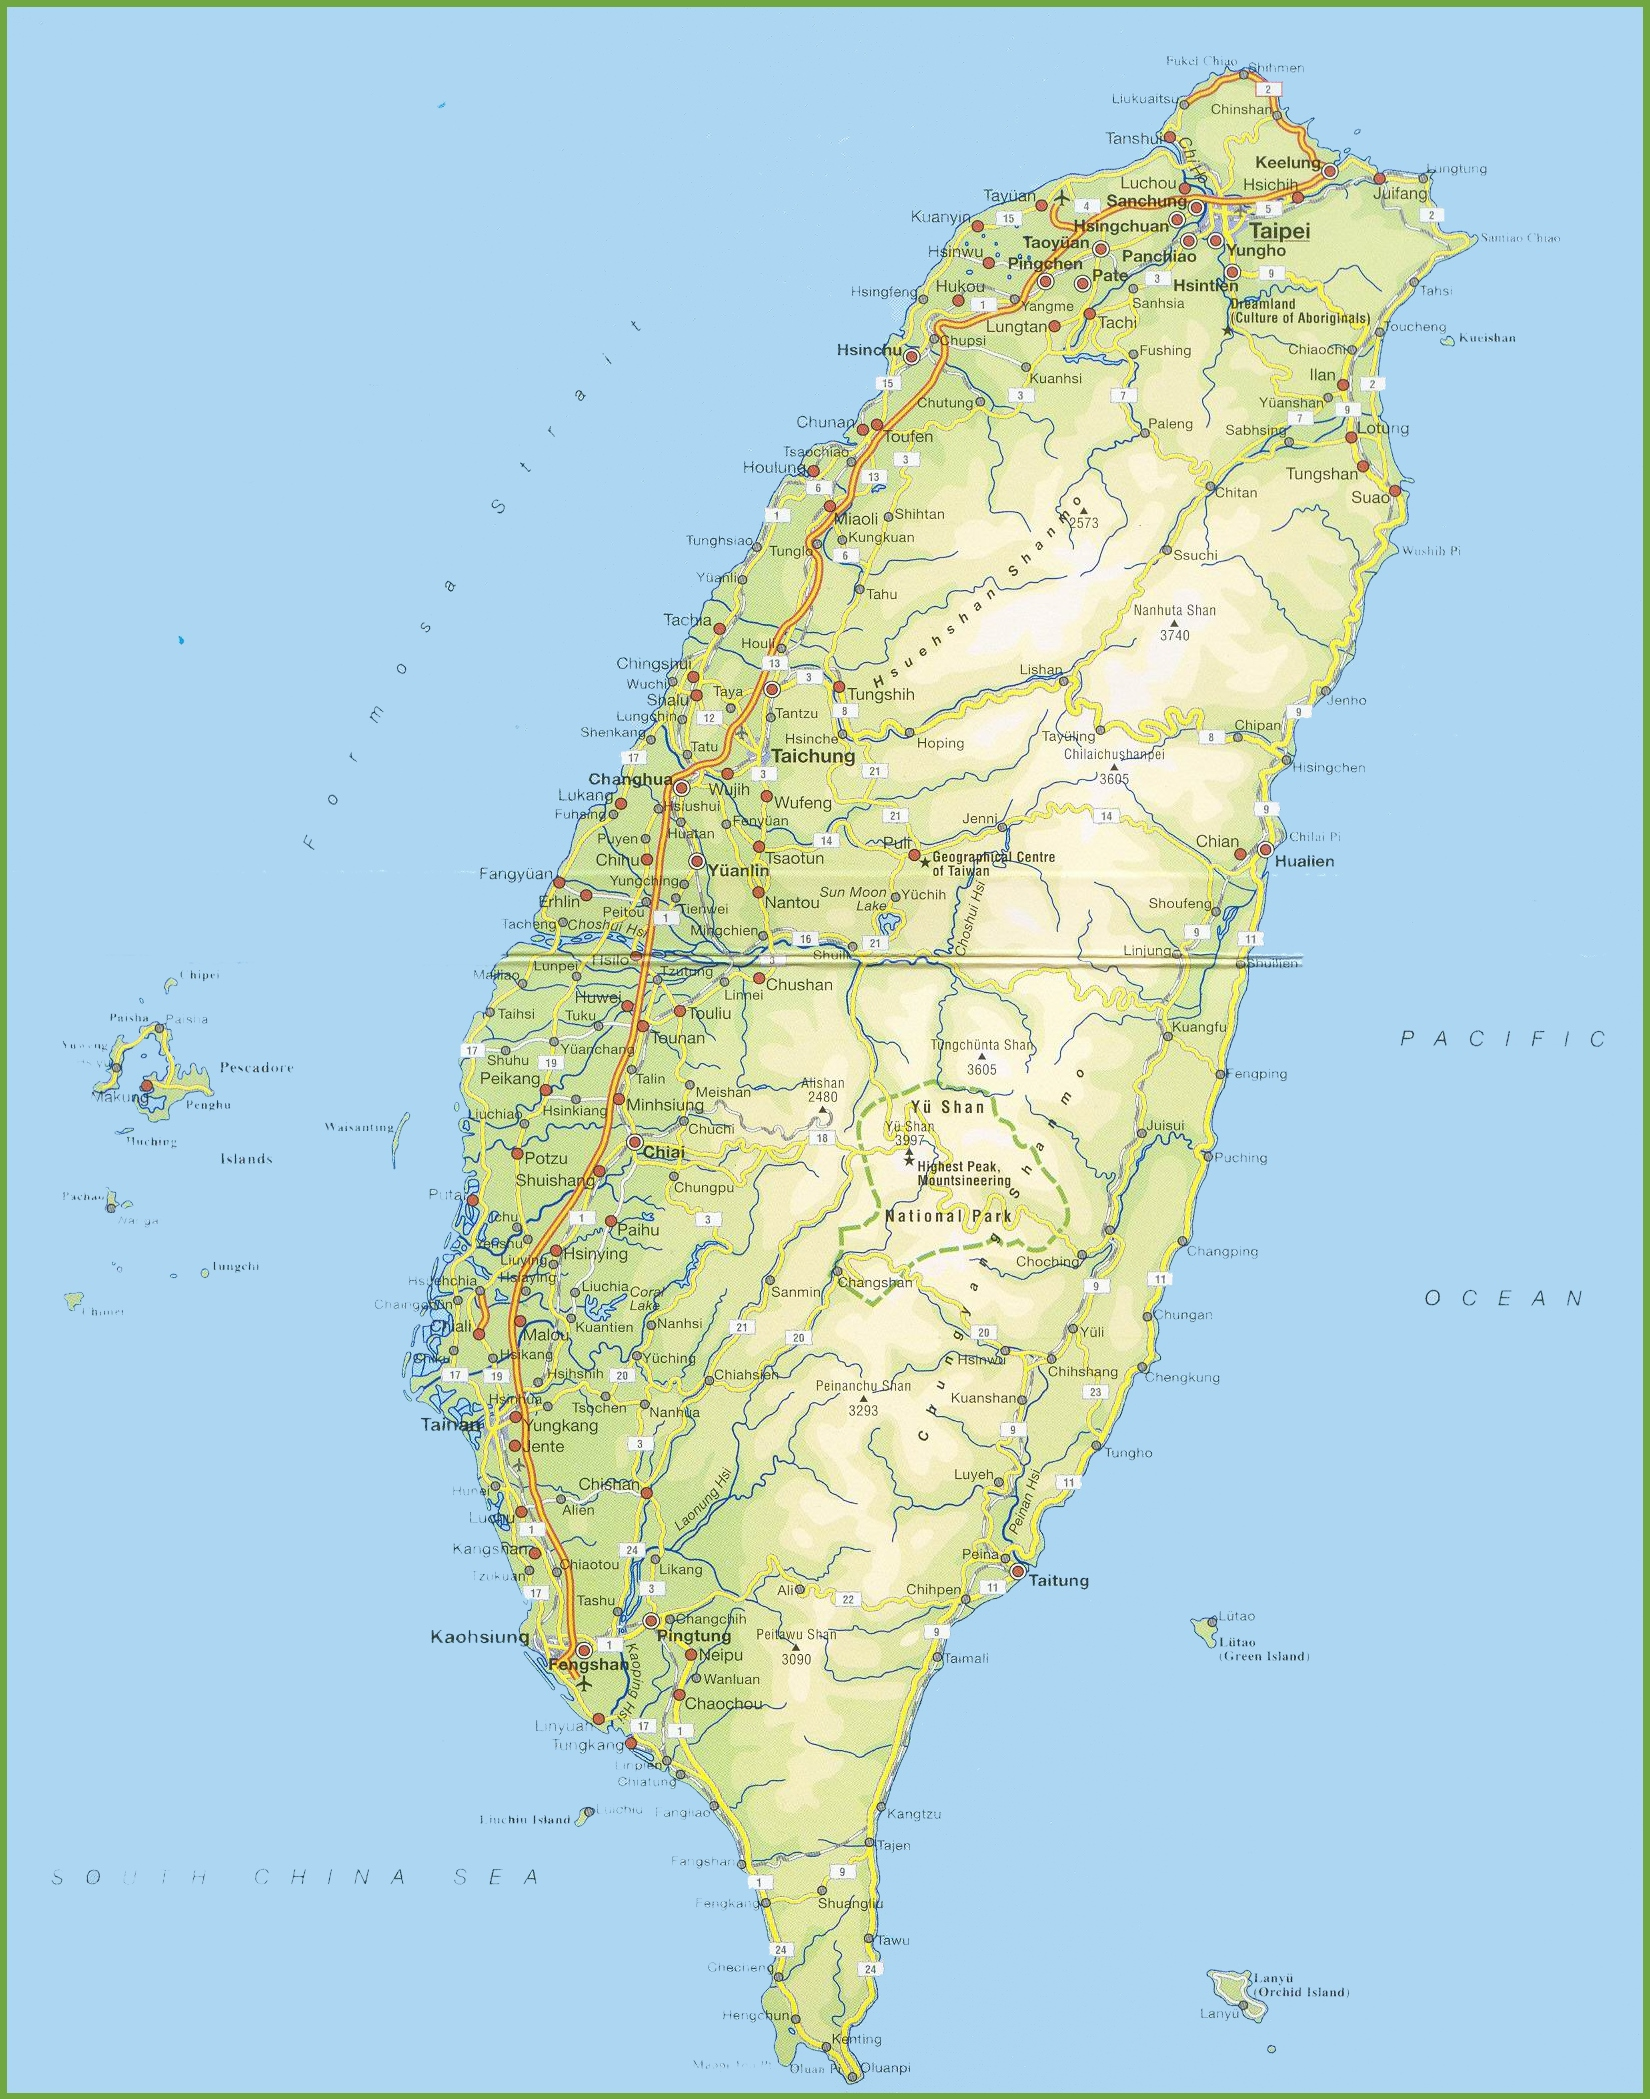 Taiwan Maps Maps of Taiwan Republic of China